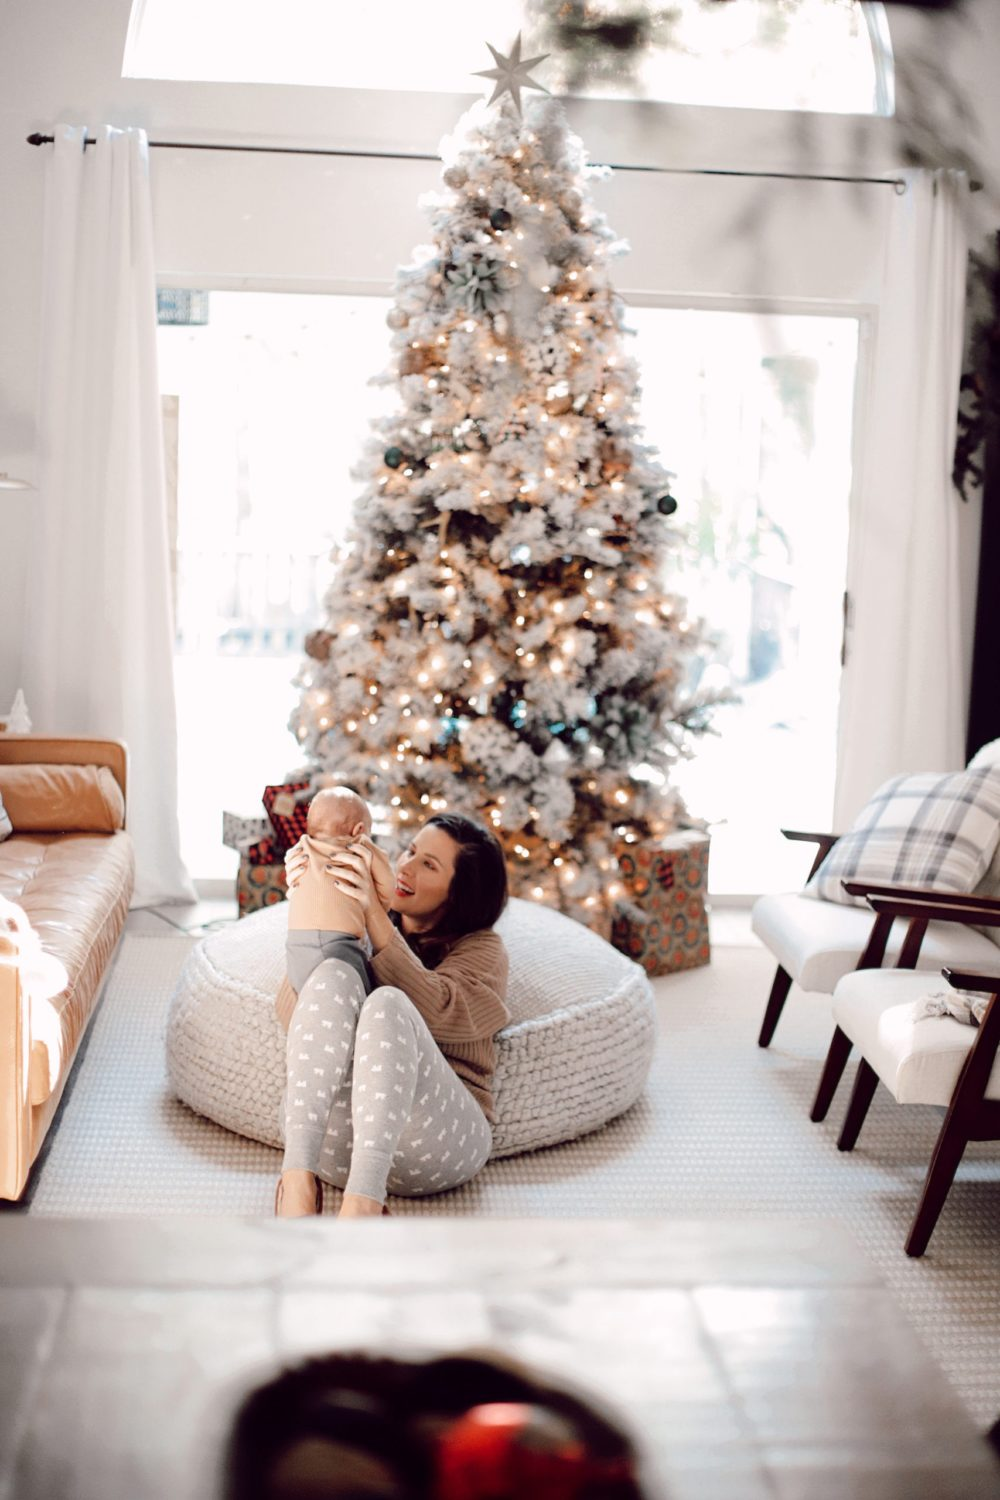 7 Geniously Efficient Mom Hacks for Home Design | 7 Genius Efficient Home Design Hacks for Moms by popular Florida life and style blog, Fresh Mommy Blog: image of a mom sitting on the floor in her living room and holding her new born baby.